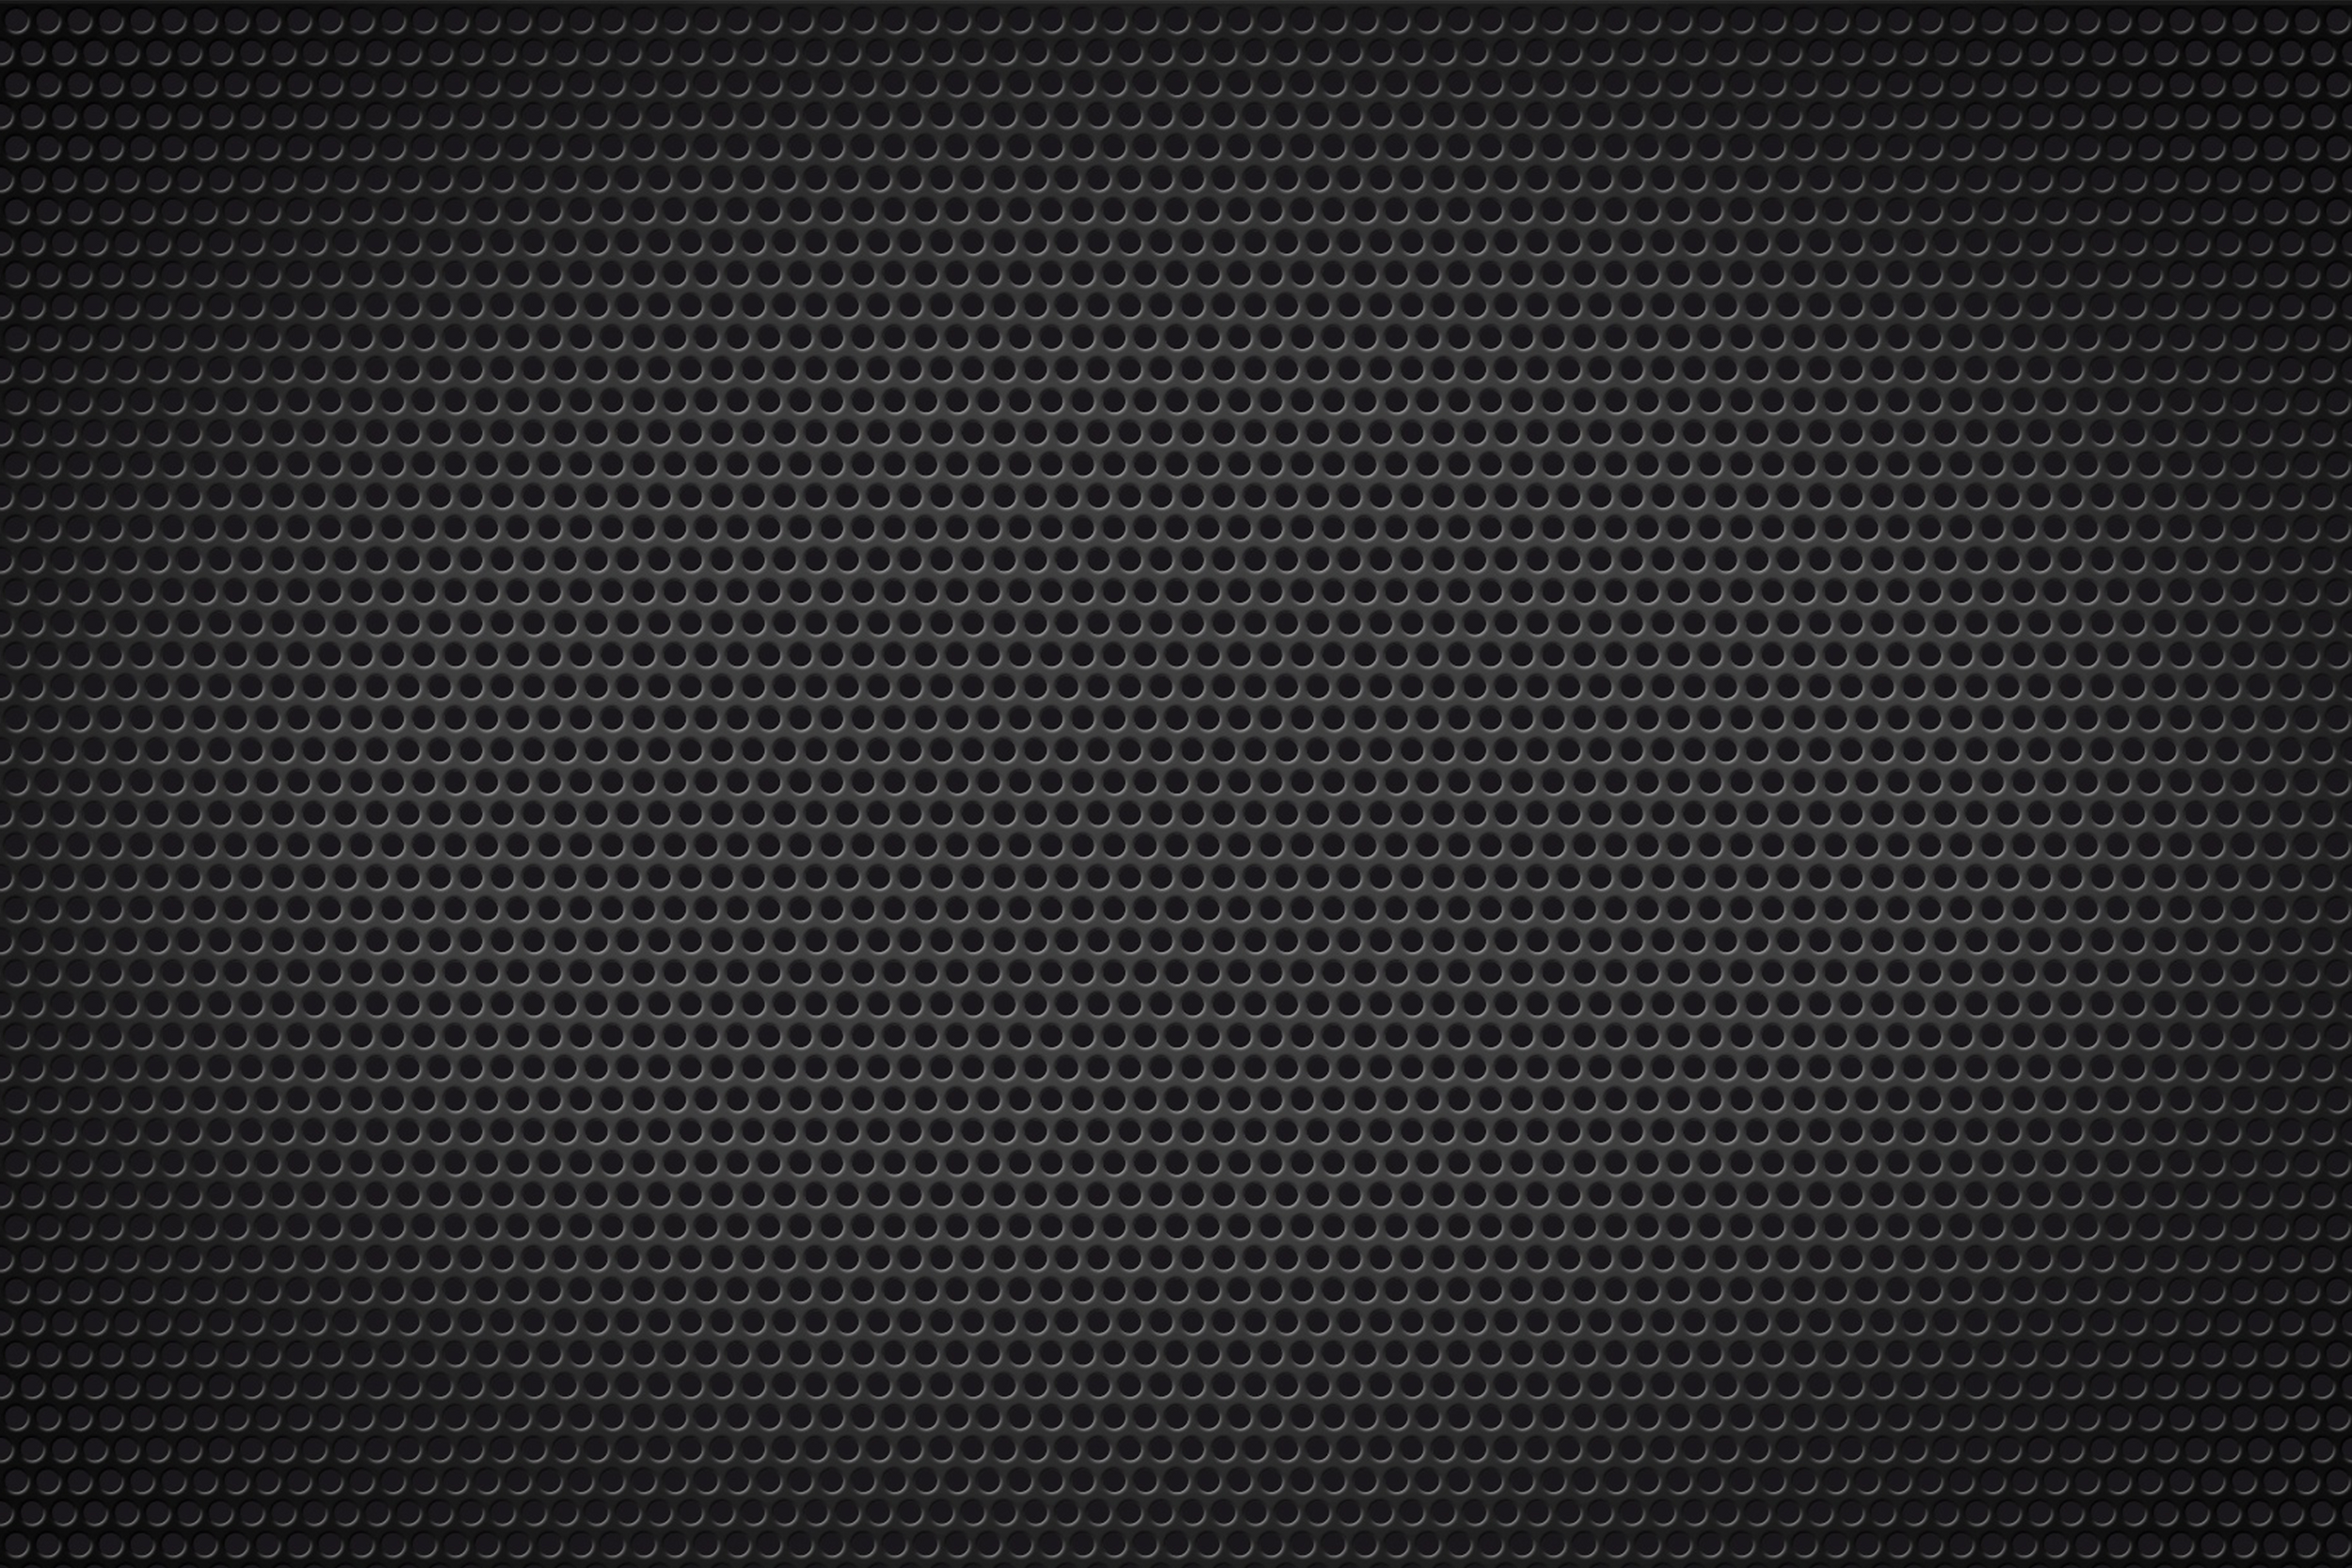 KG-Truck-Web-2500x1667-background.png